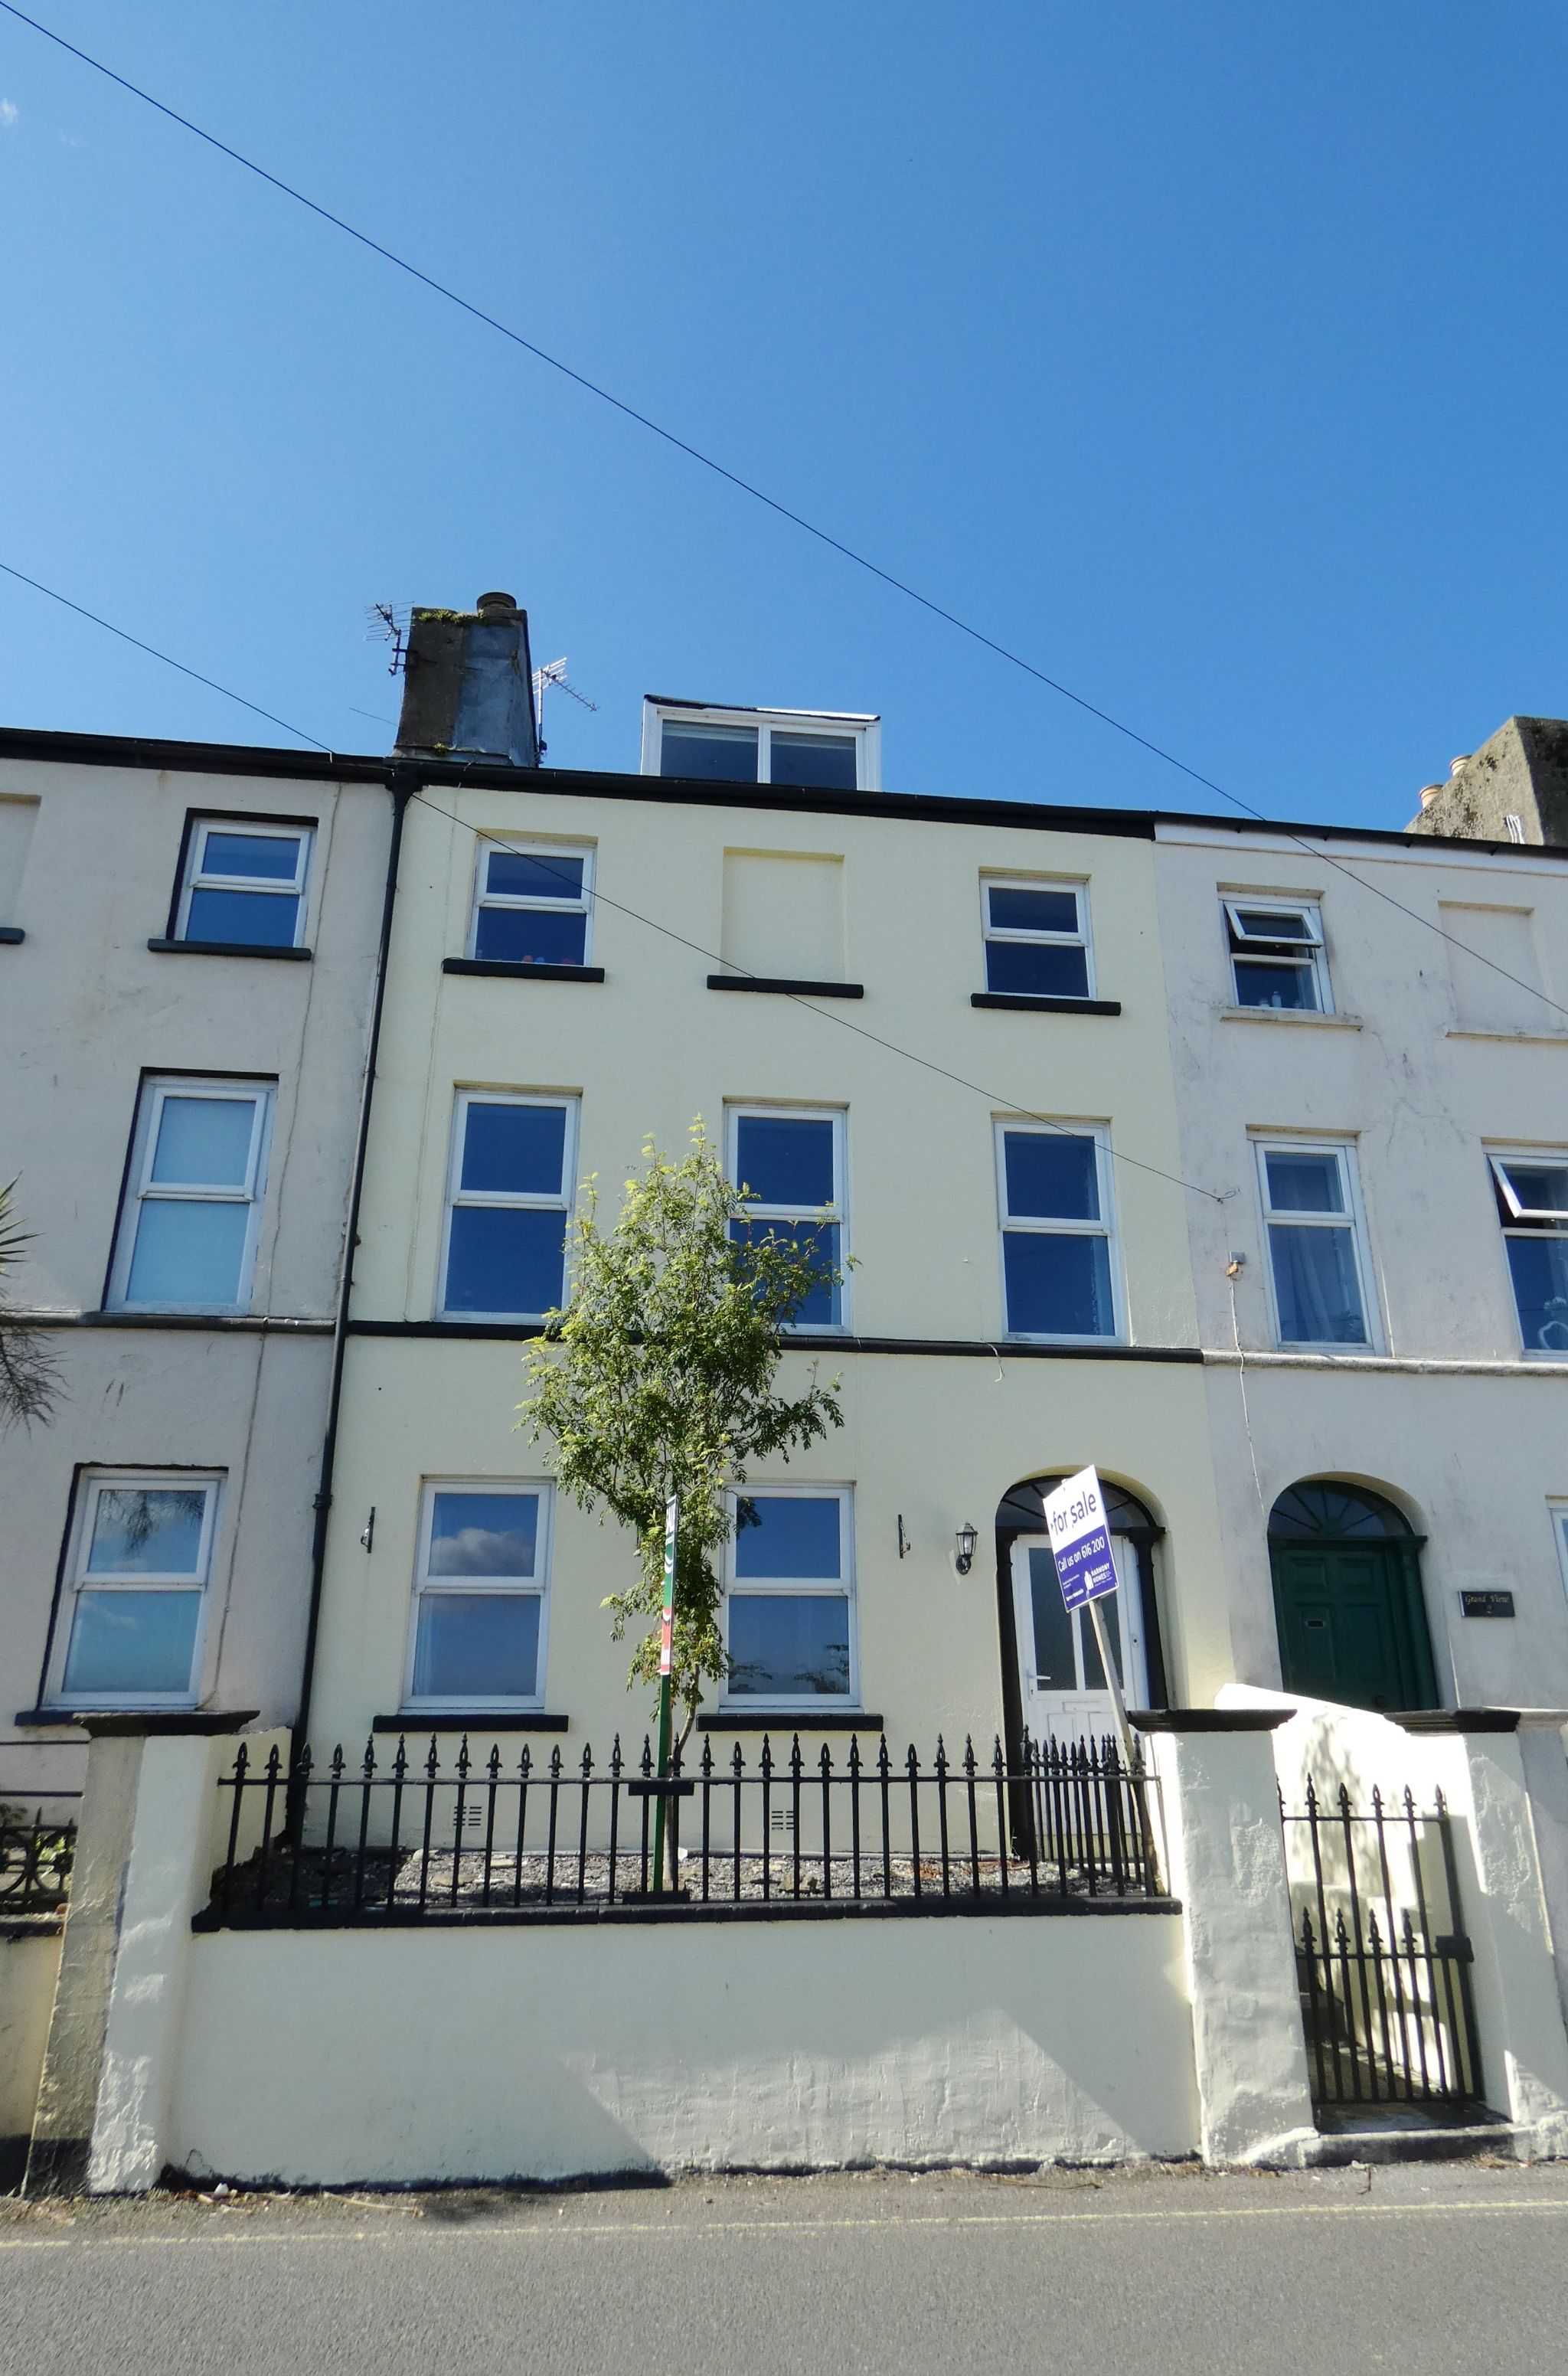 5 bedroom mid terraced house For Sale in Douglas - Photograph 1